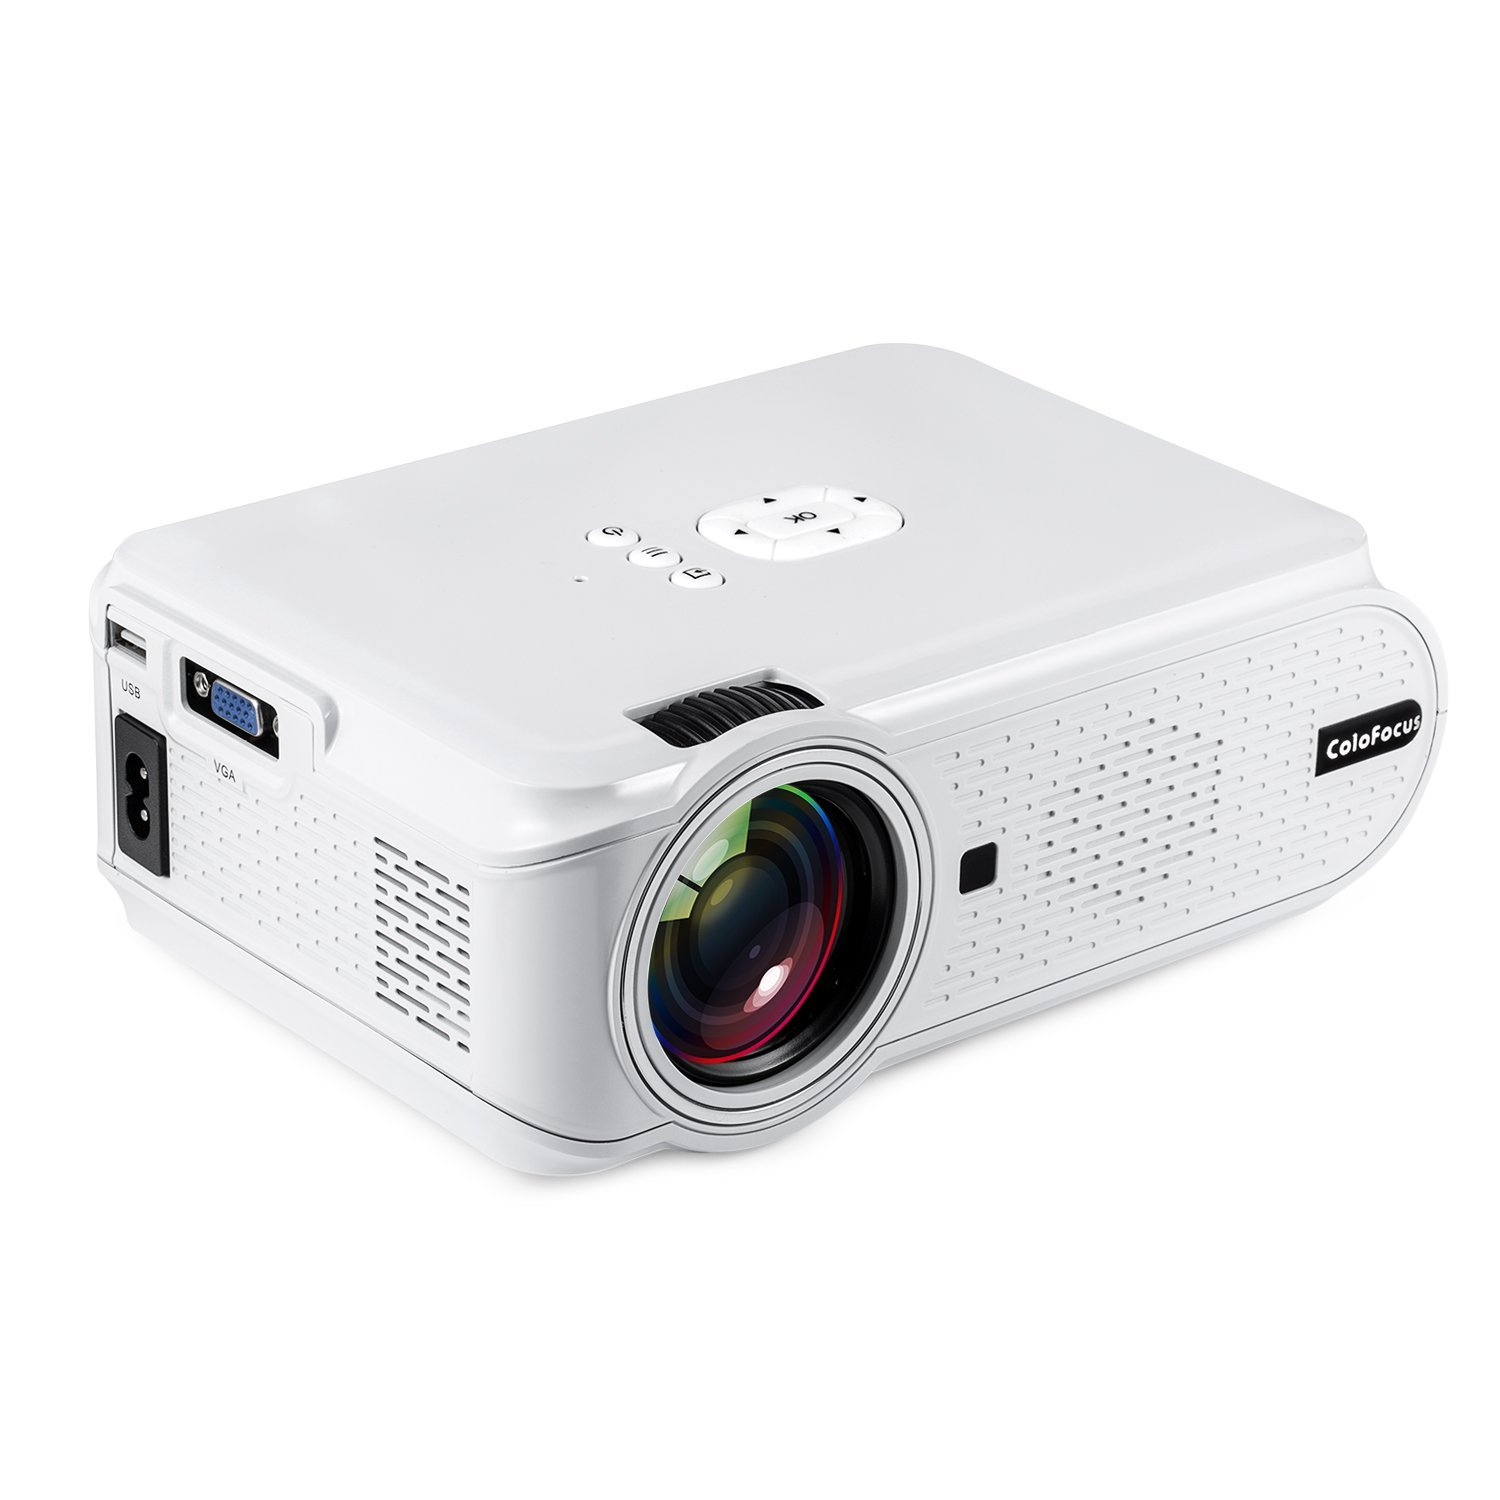 Hd projector home video mini projector with 1080p for Small projector for laptop